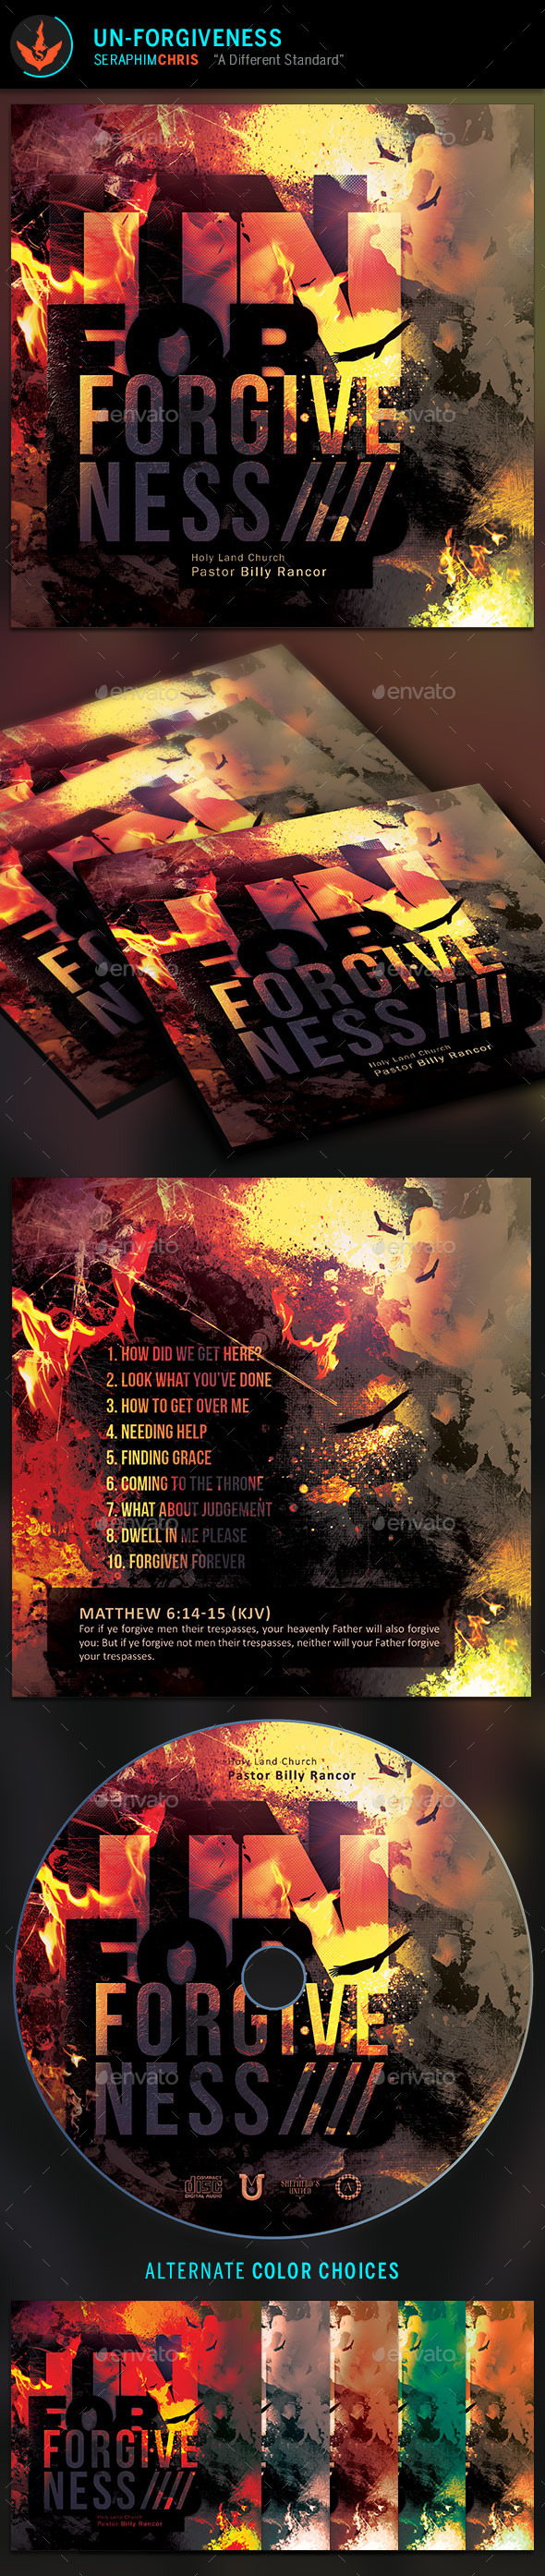 Un-Forgiveness CD Artwork Template - CD & DVD Artwork Print Templates